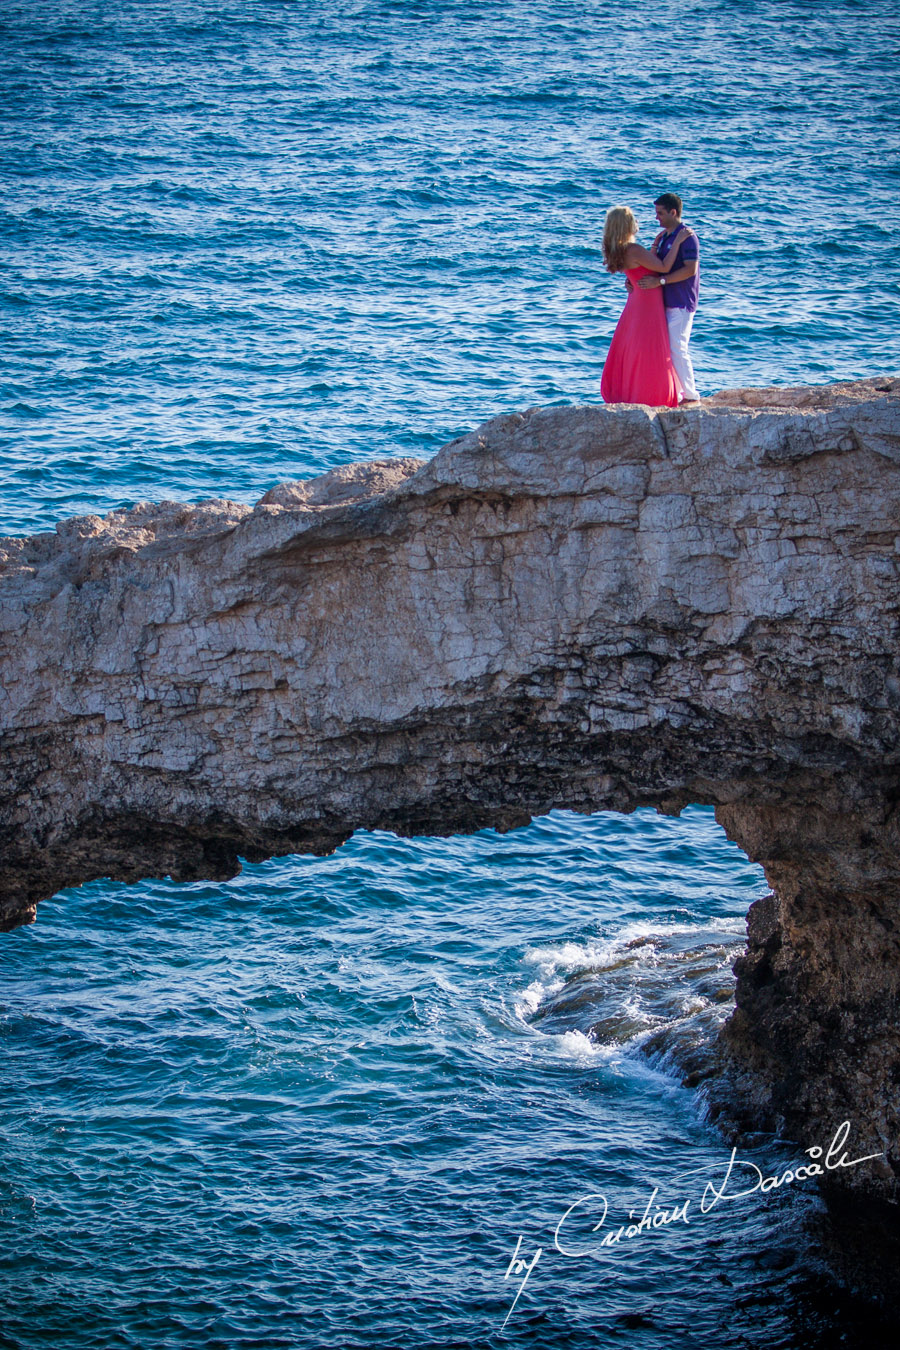 Photo shoot in Cyprus, Agya Napa - Demetris & Anna. Cyprus Photographer: Cristian Dascalu